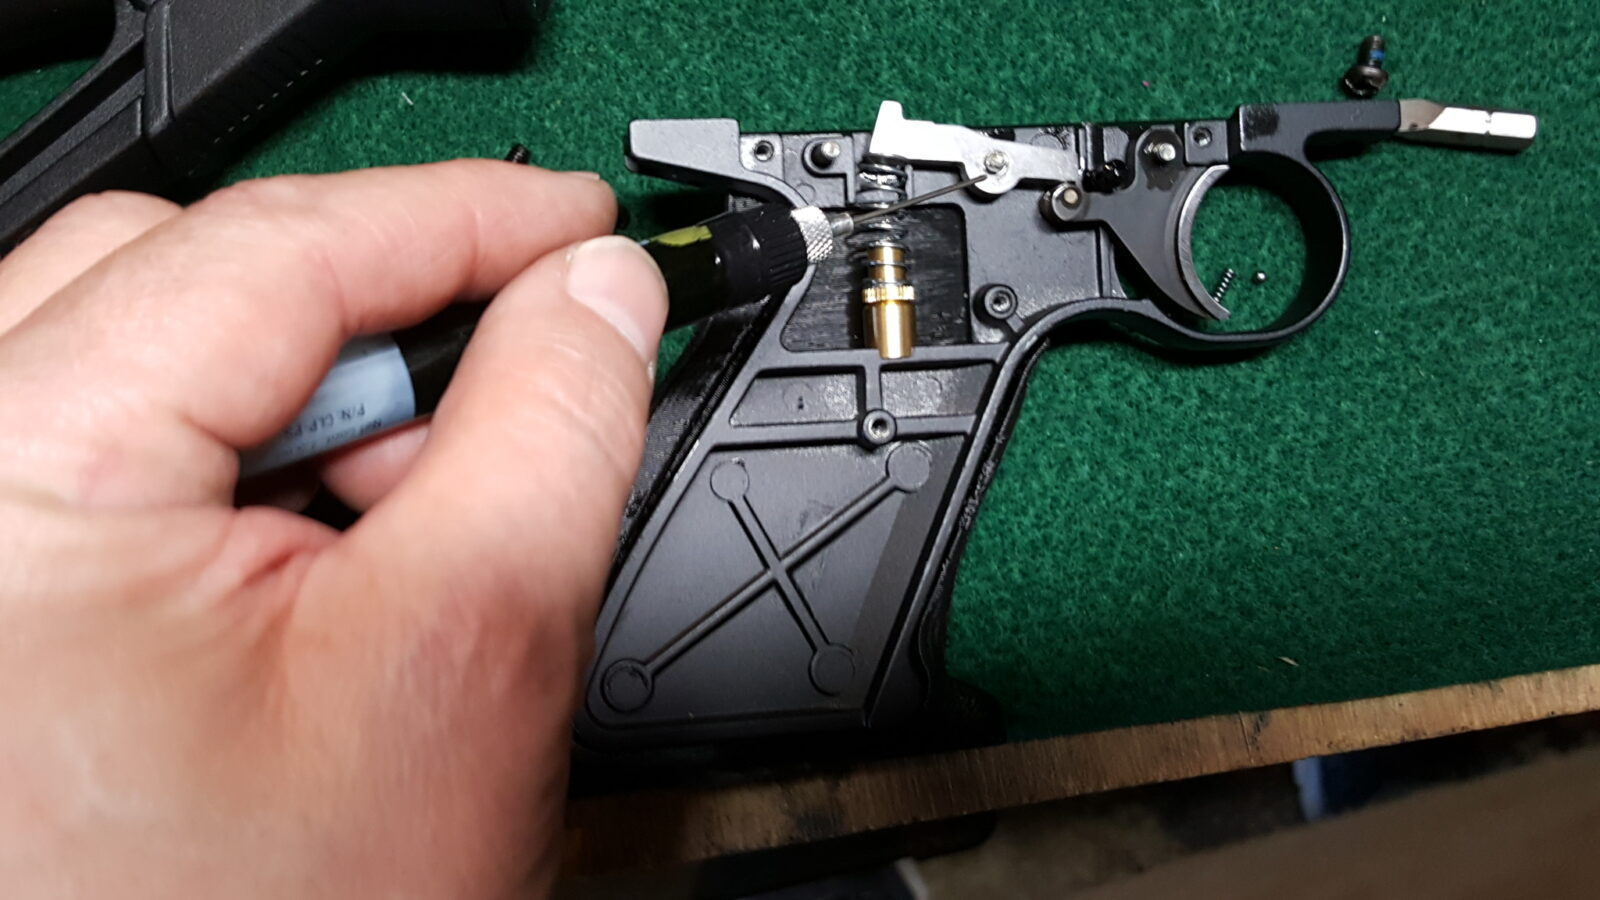 What to do if the Crosman 2240 safety spring and detent ball